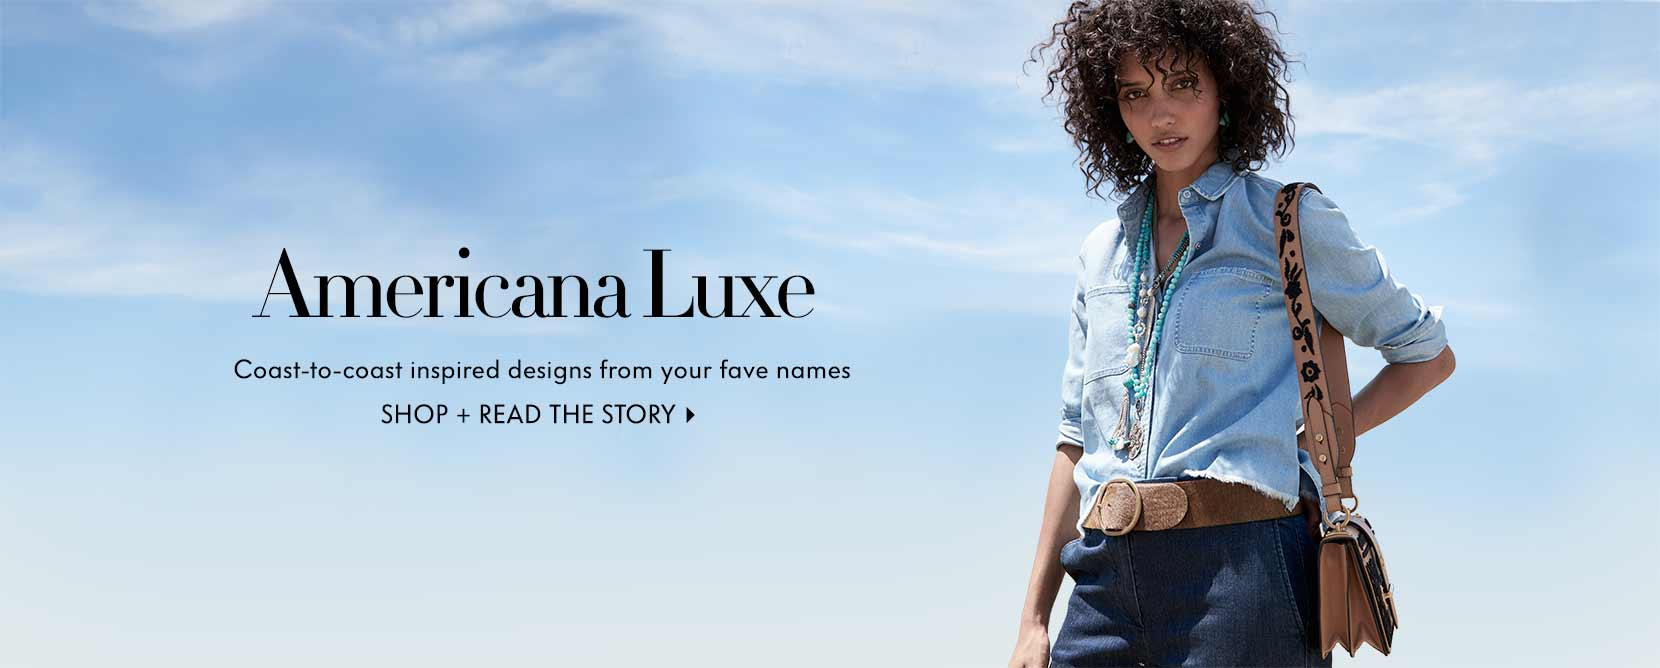 Americana luxe coast-to-coast inspired designs from your fave names shop and read the story